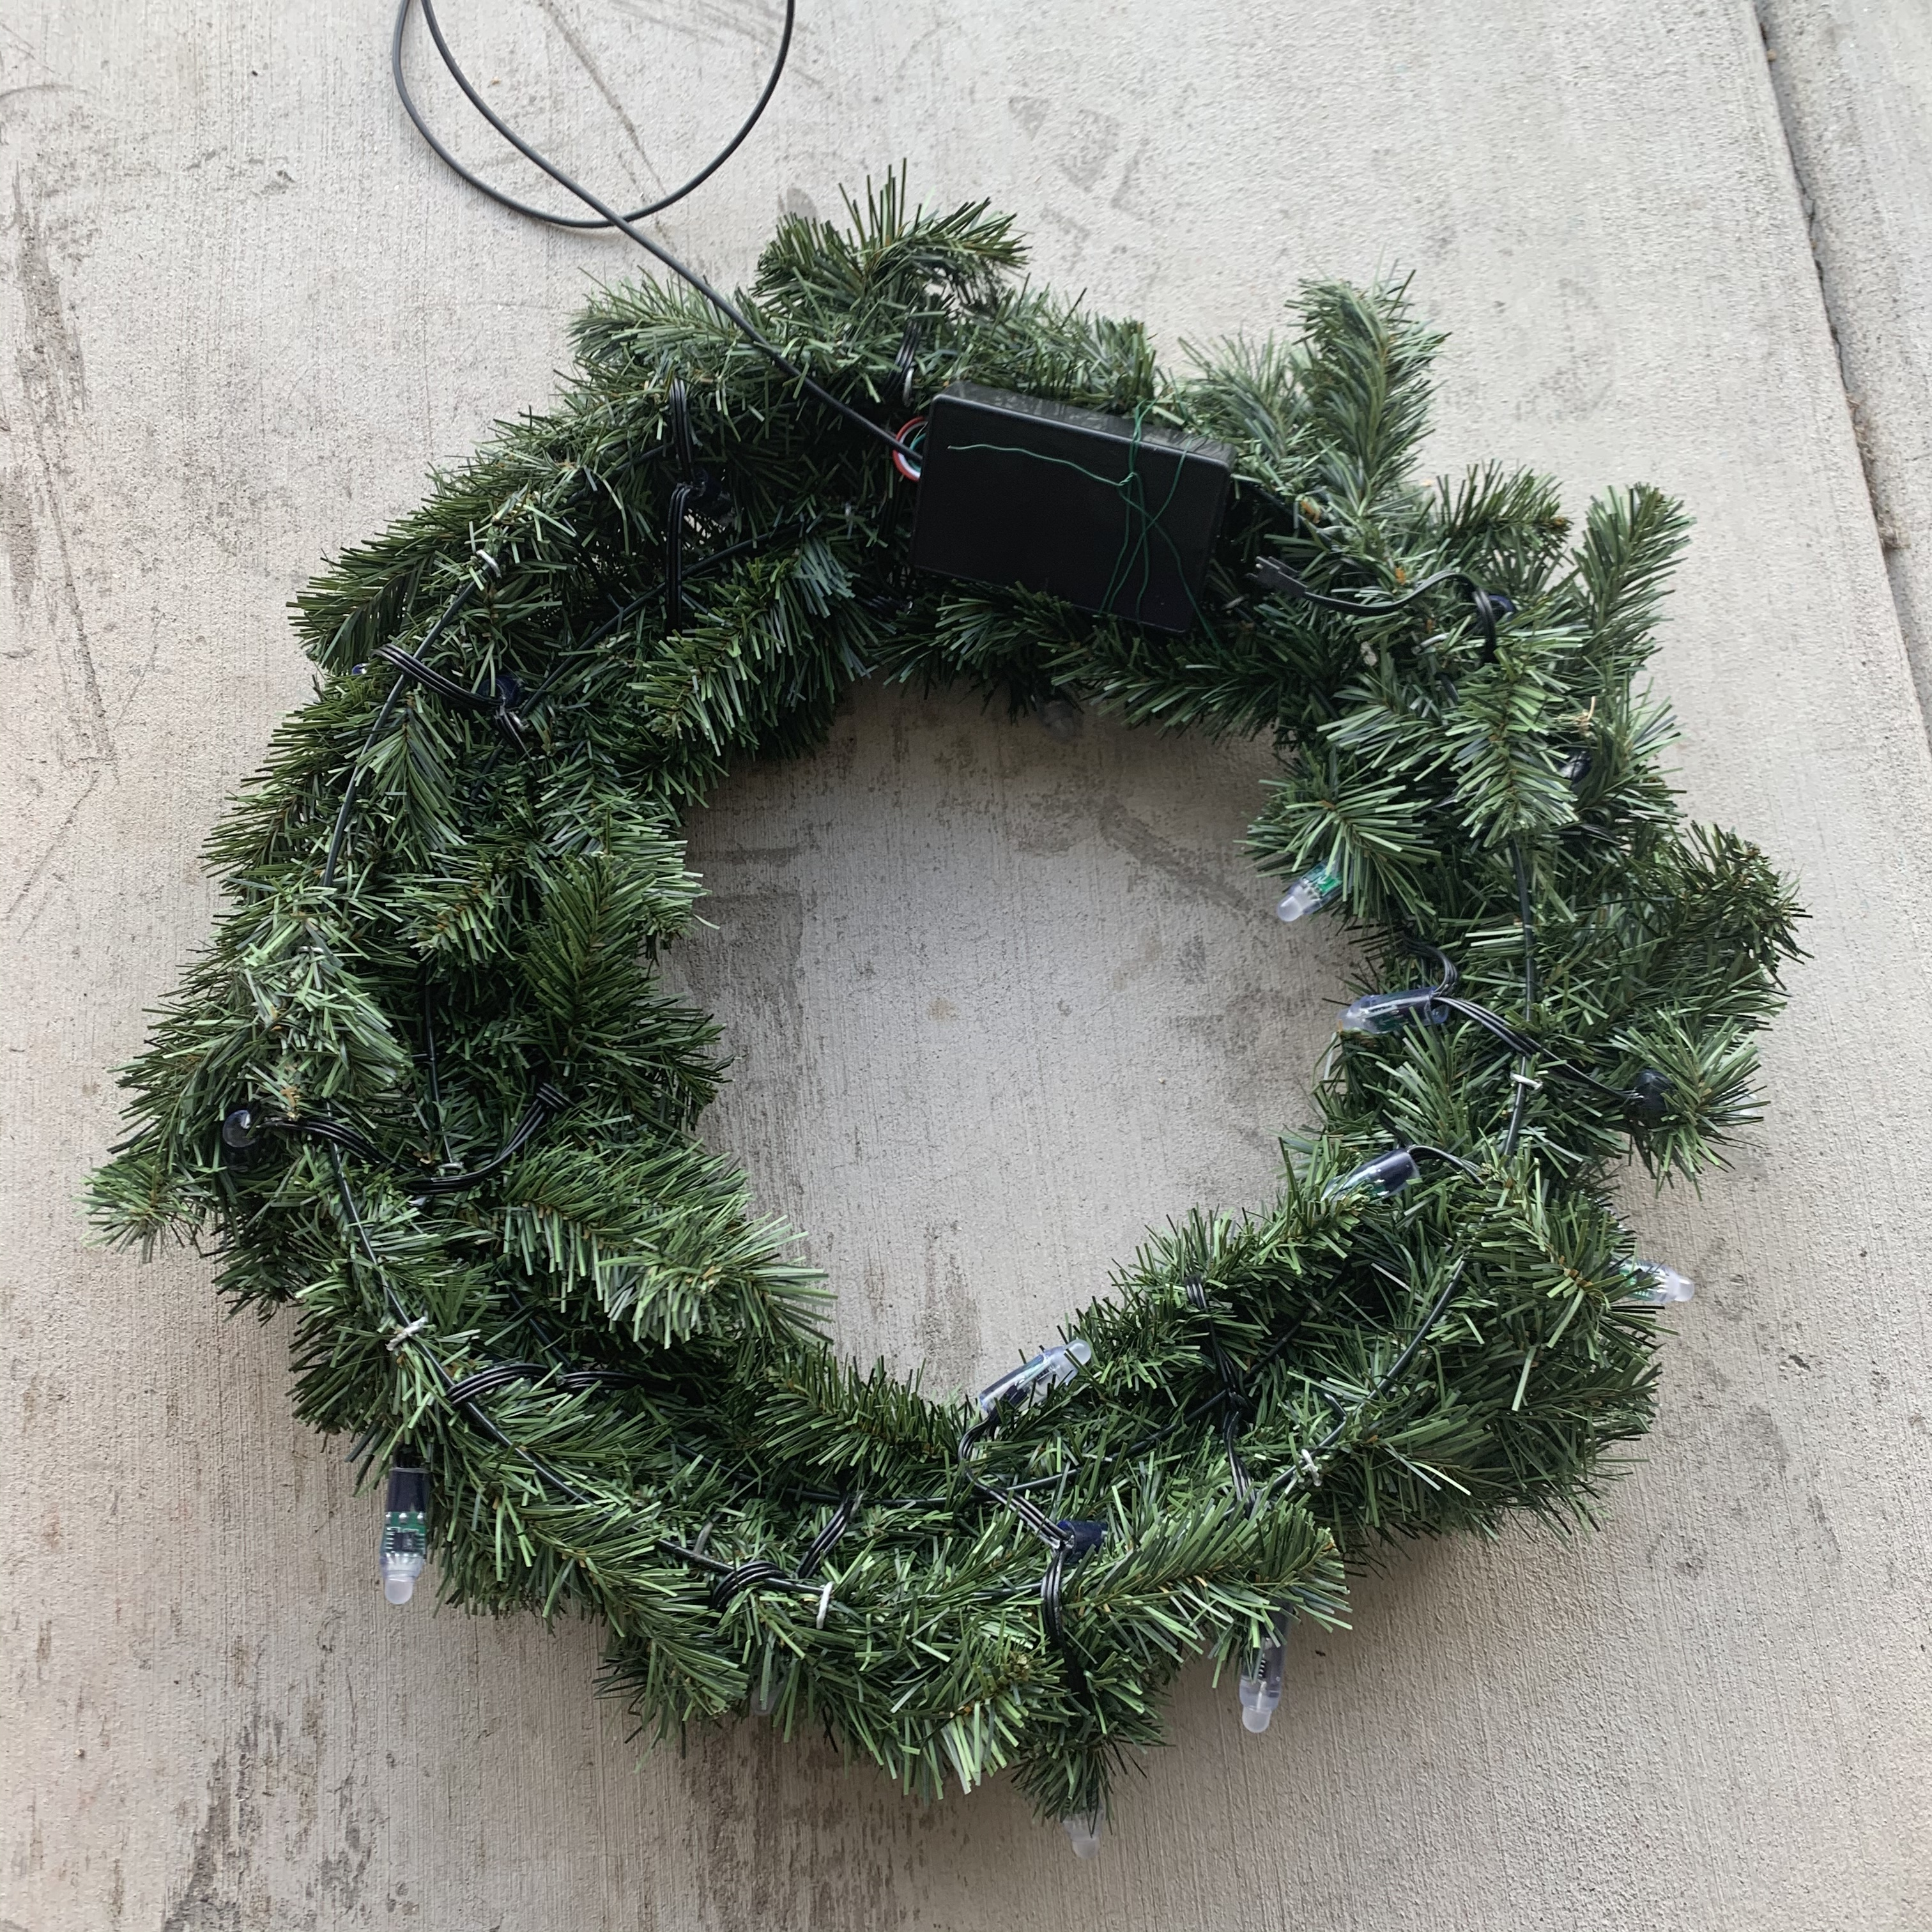 Back of wreath with WS2811 LEDs and project box